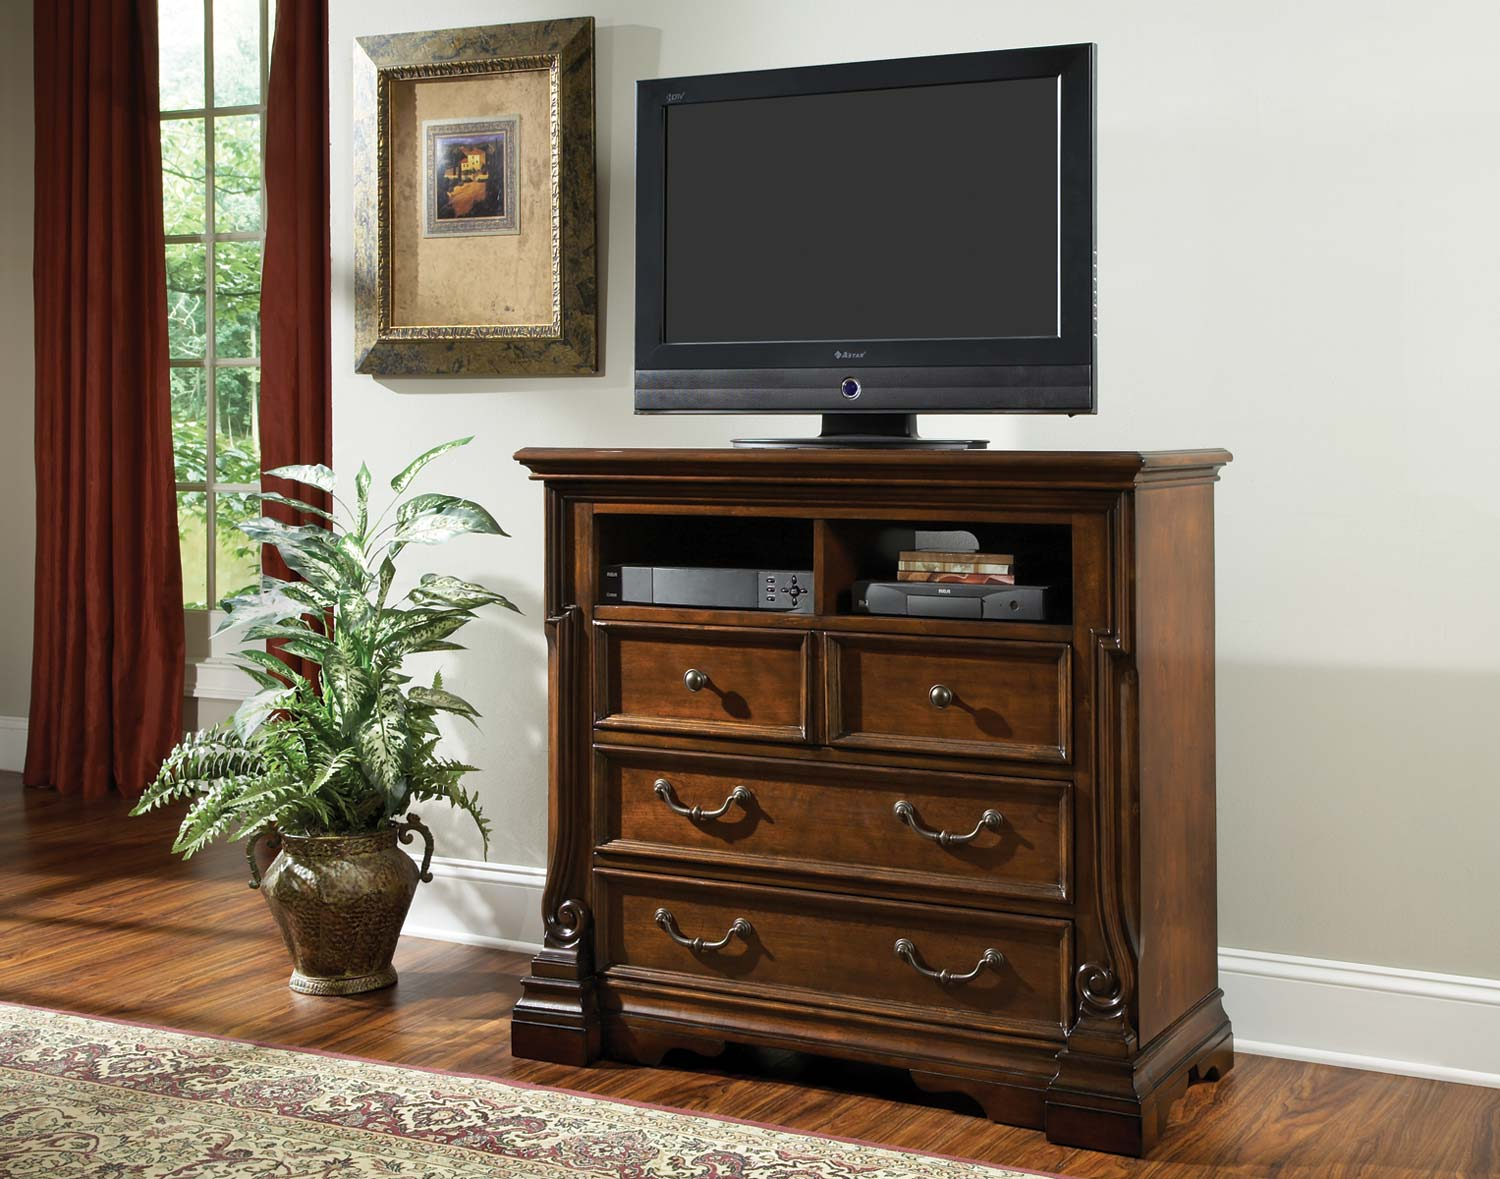 Homelegance Havenwood TV Chest - Cherry